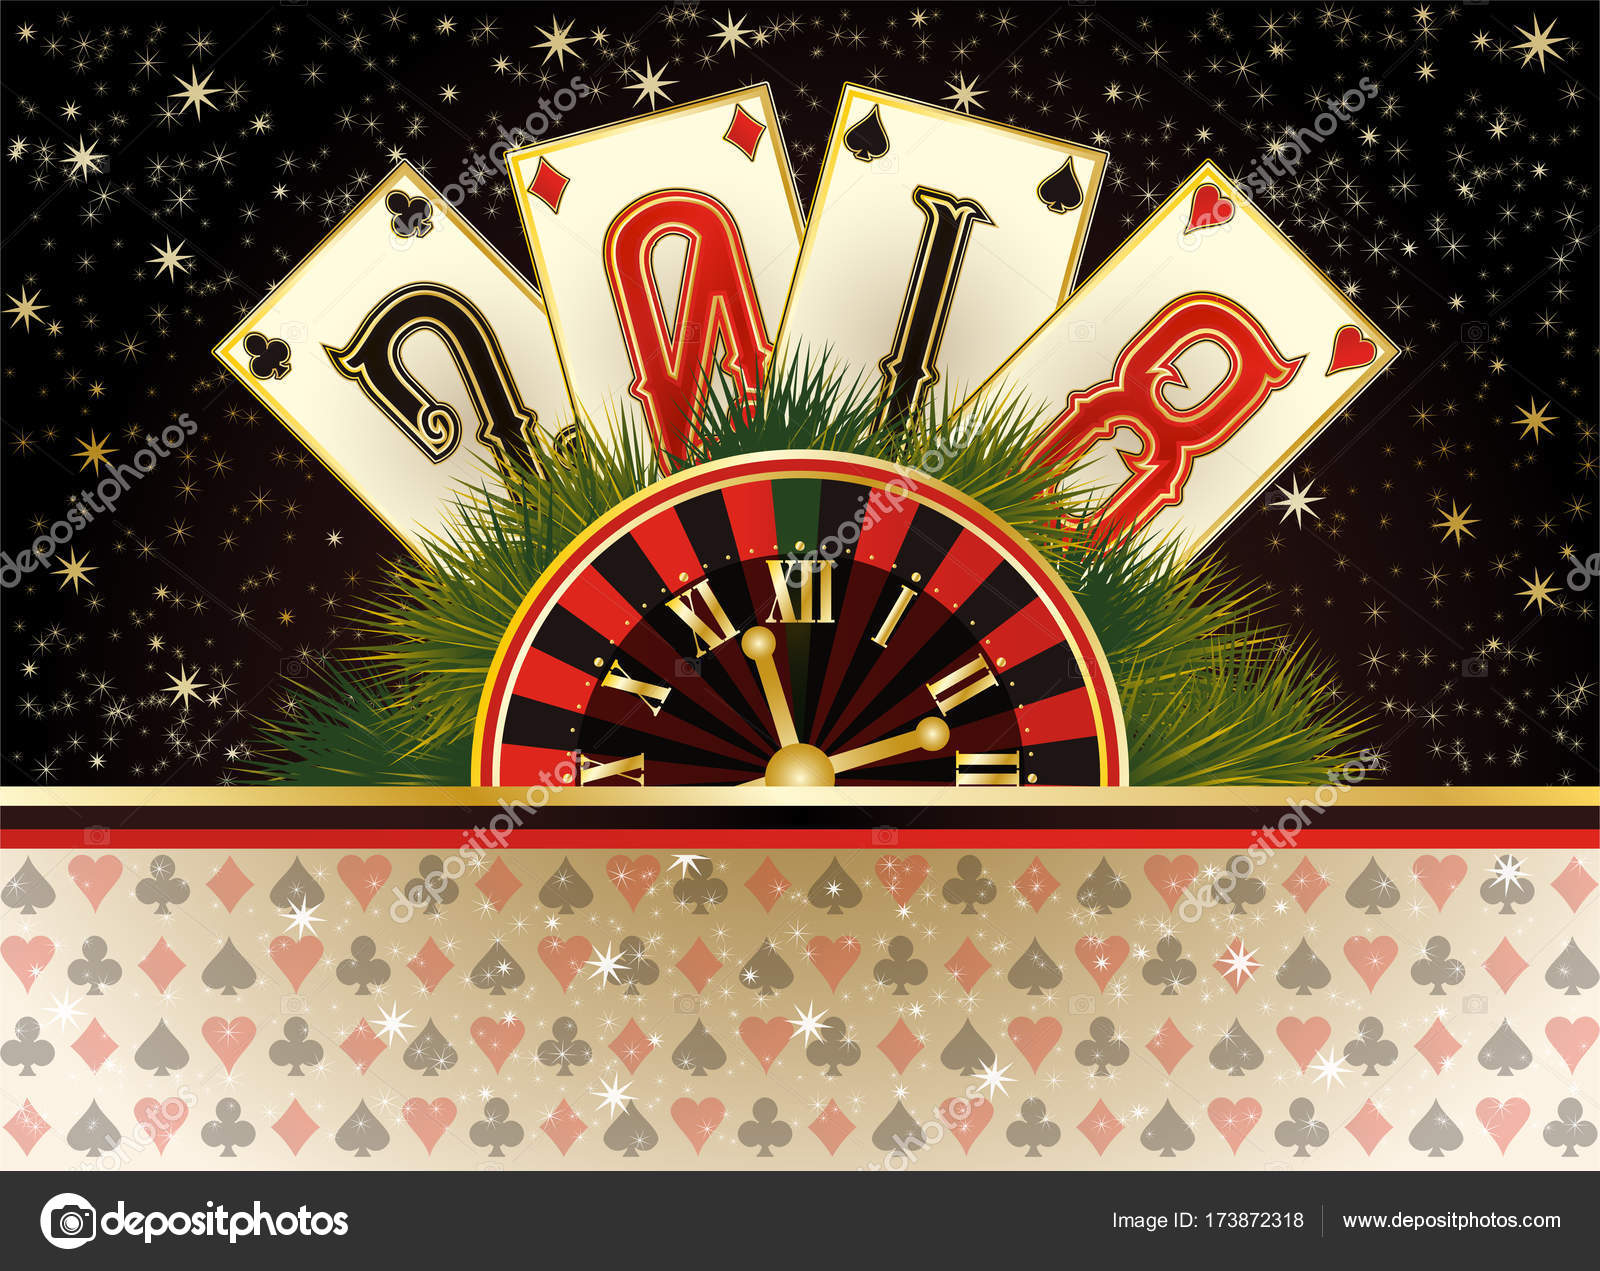 Online Casino Tip: Be Consistent